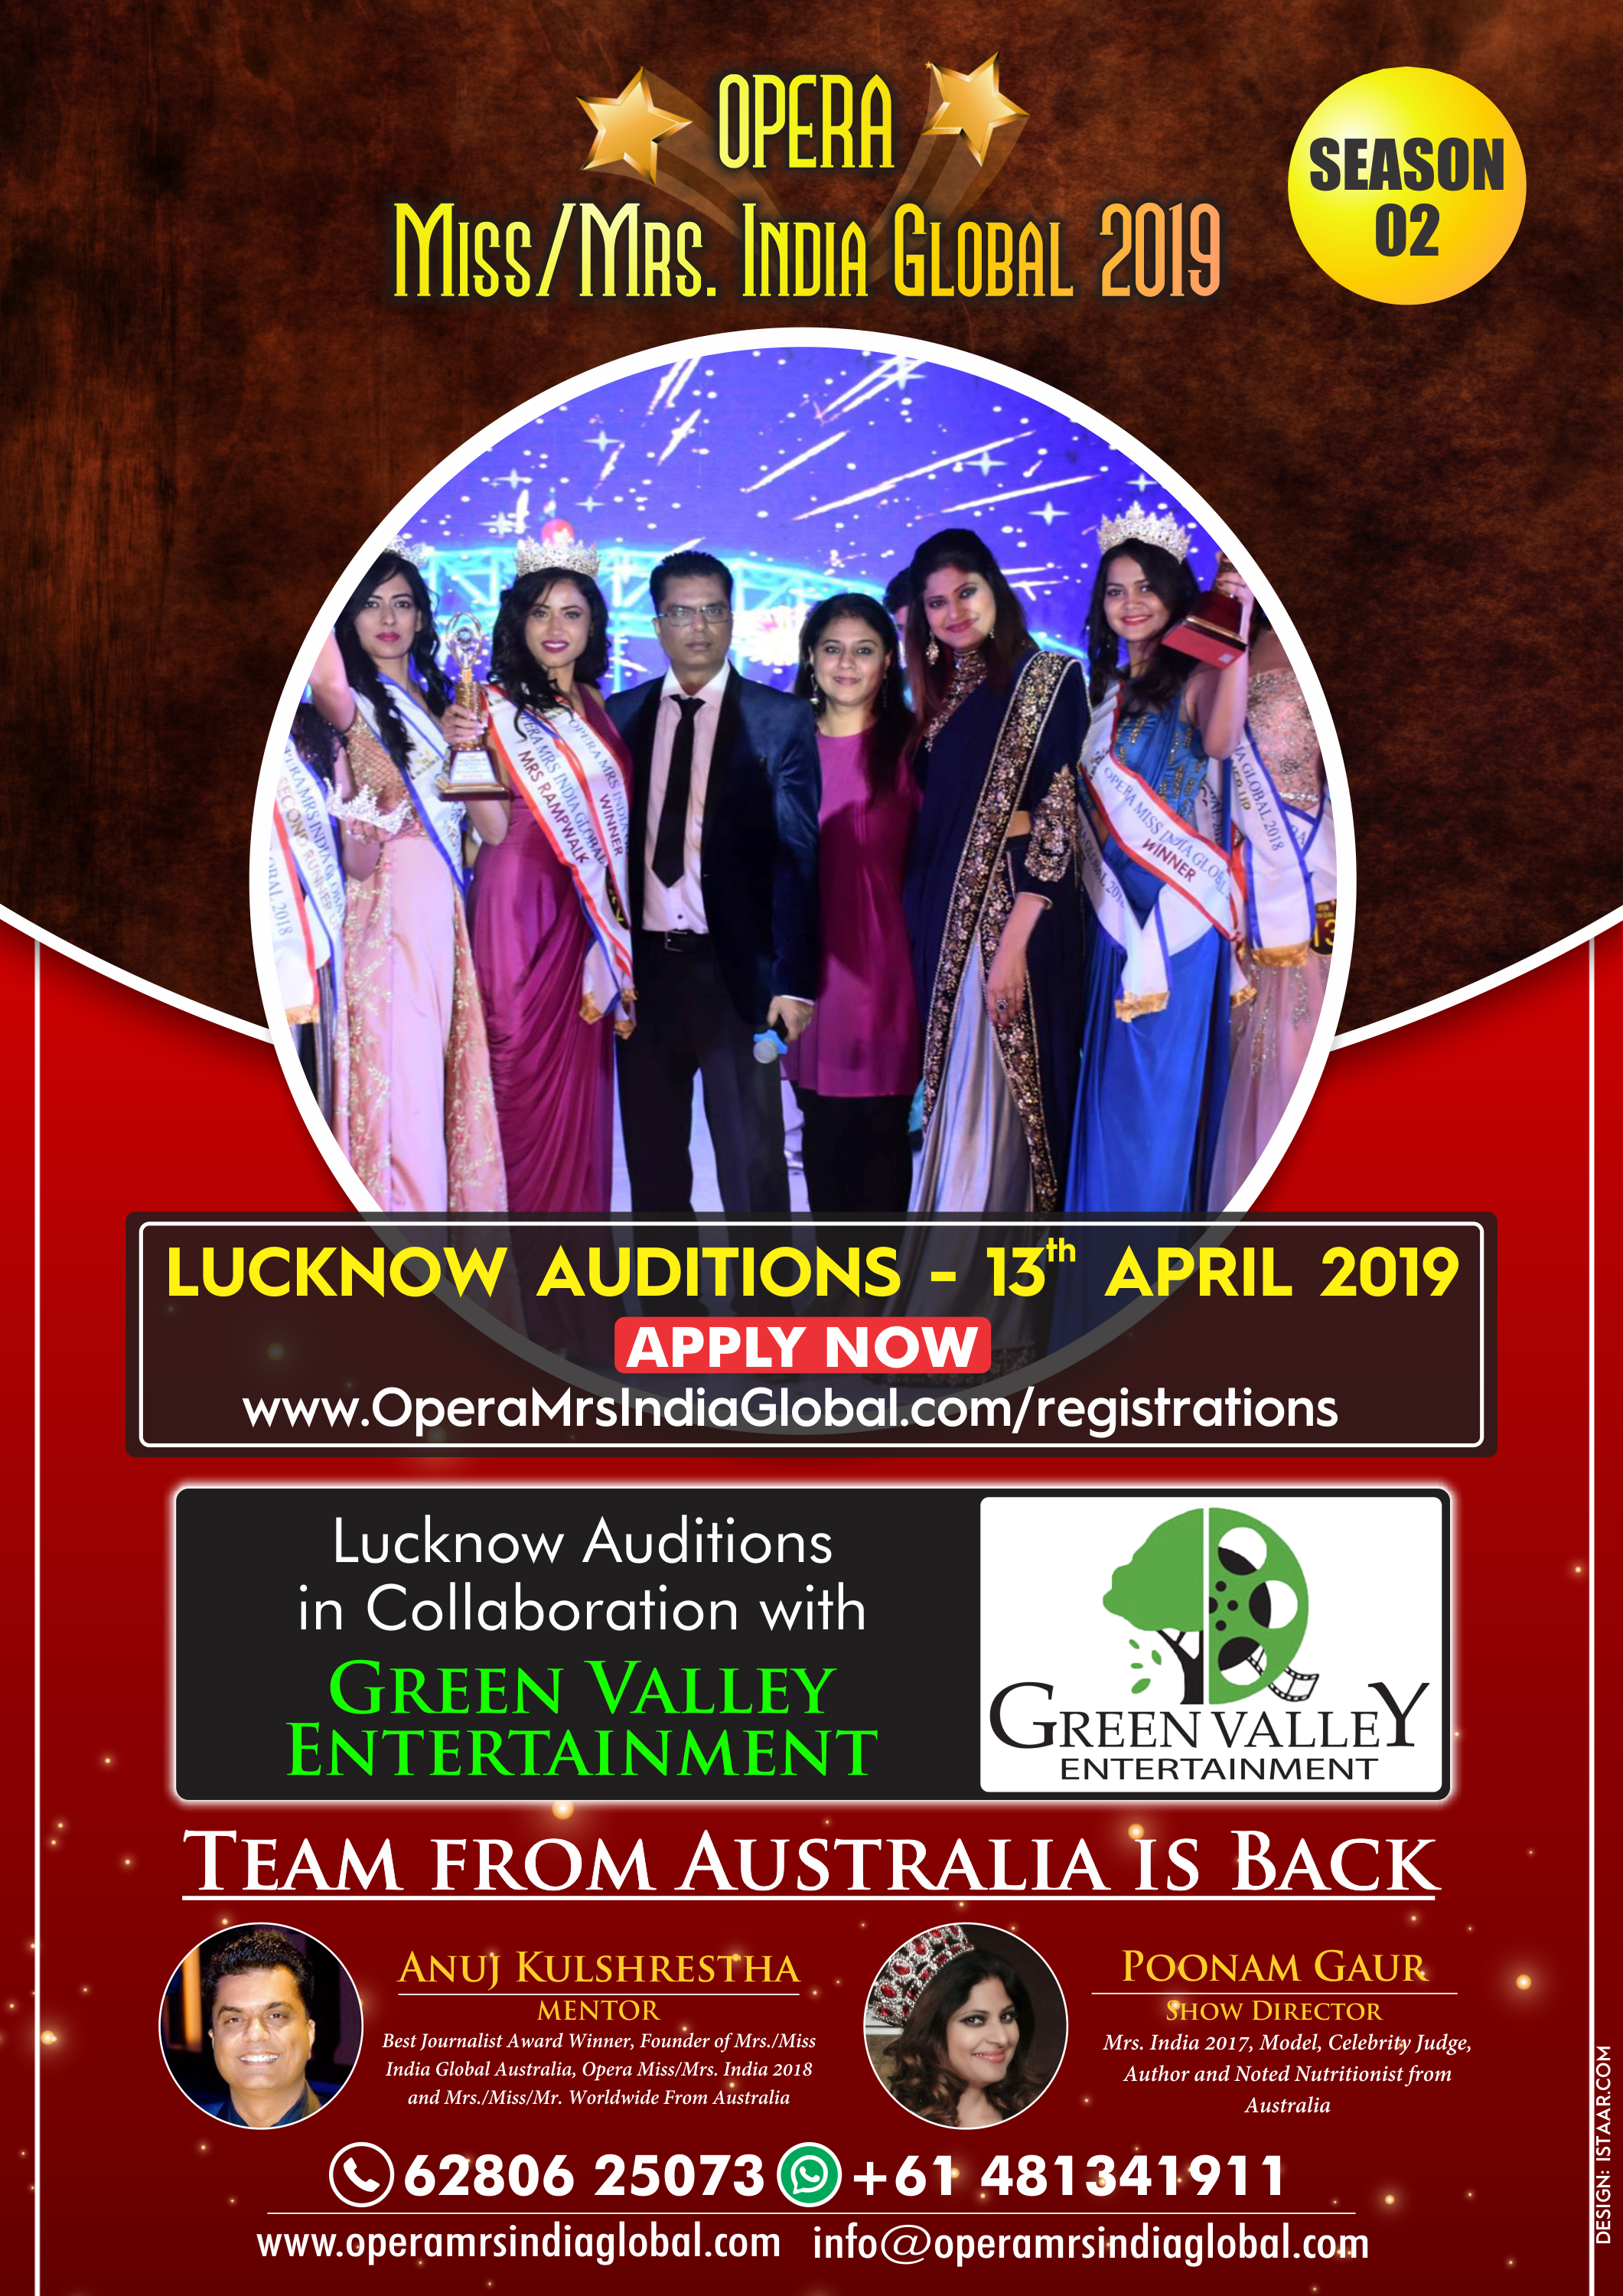 Pin by GREEN VALLEY ENTERTAINMENT on Opera Miss / Mrs India Global